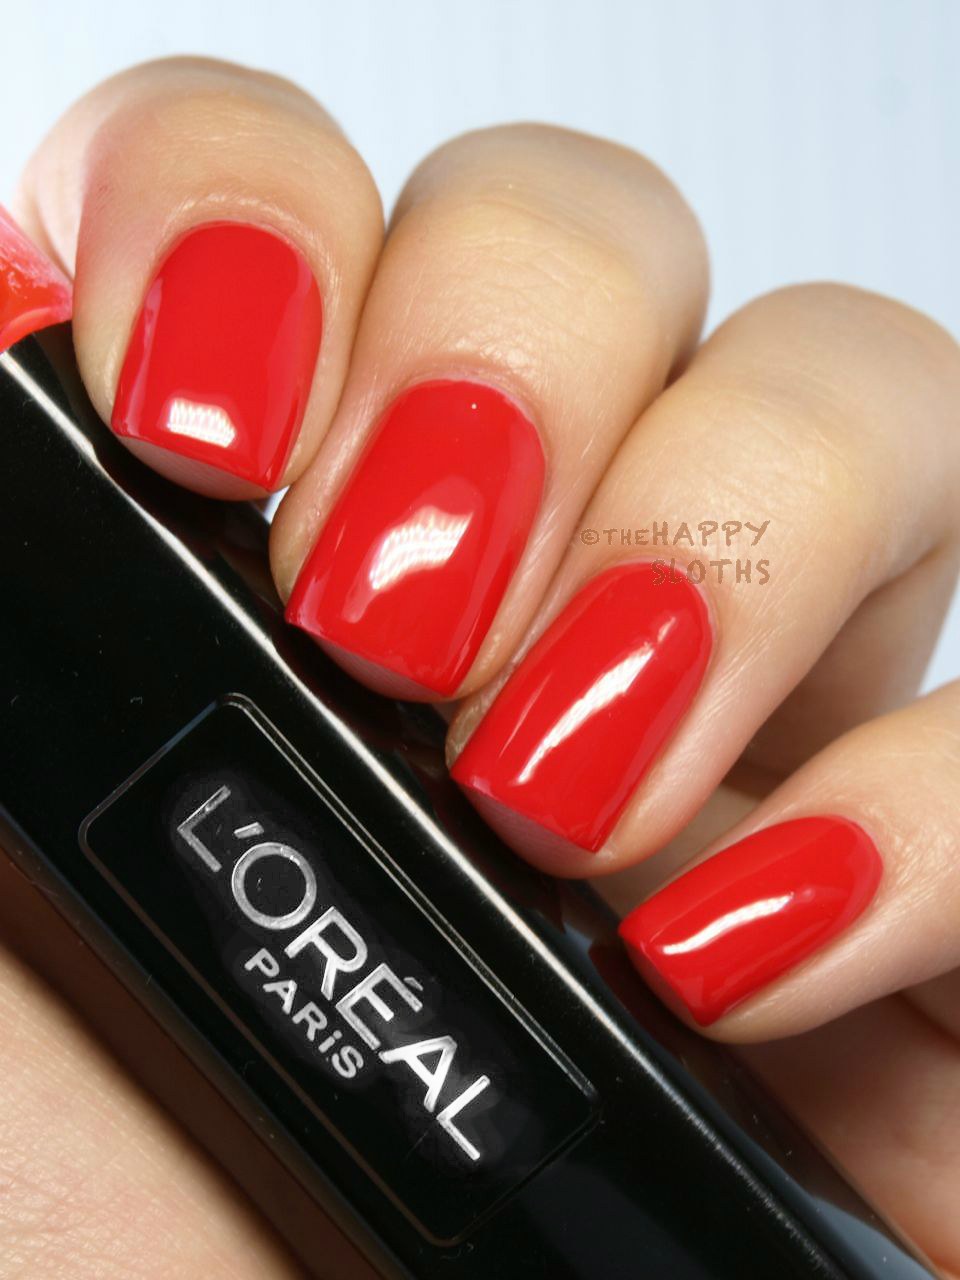 L'Oreal Infallible 2-Step Nail Color: Review and Swatches